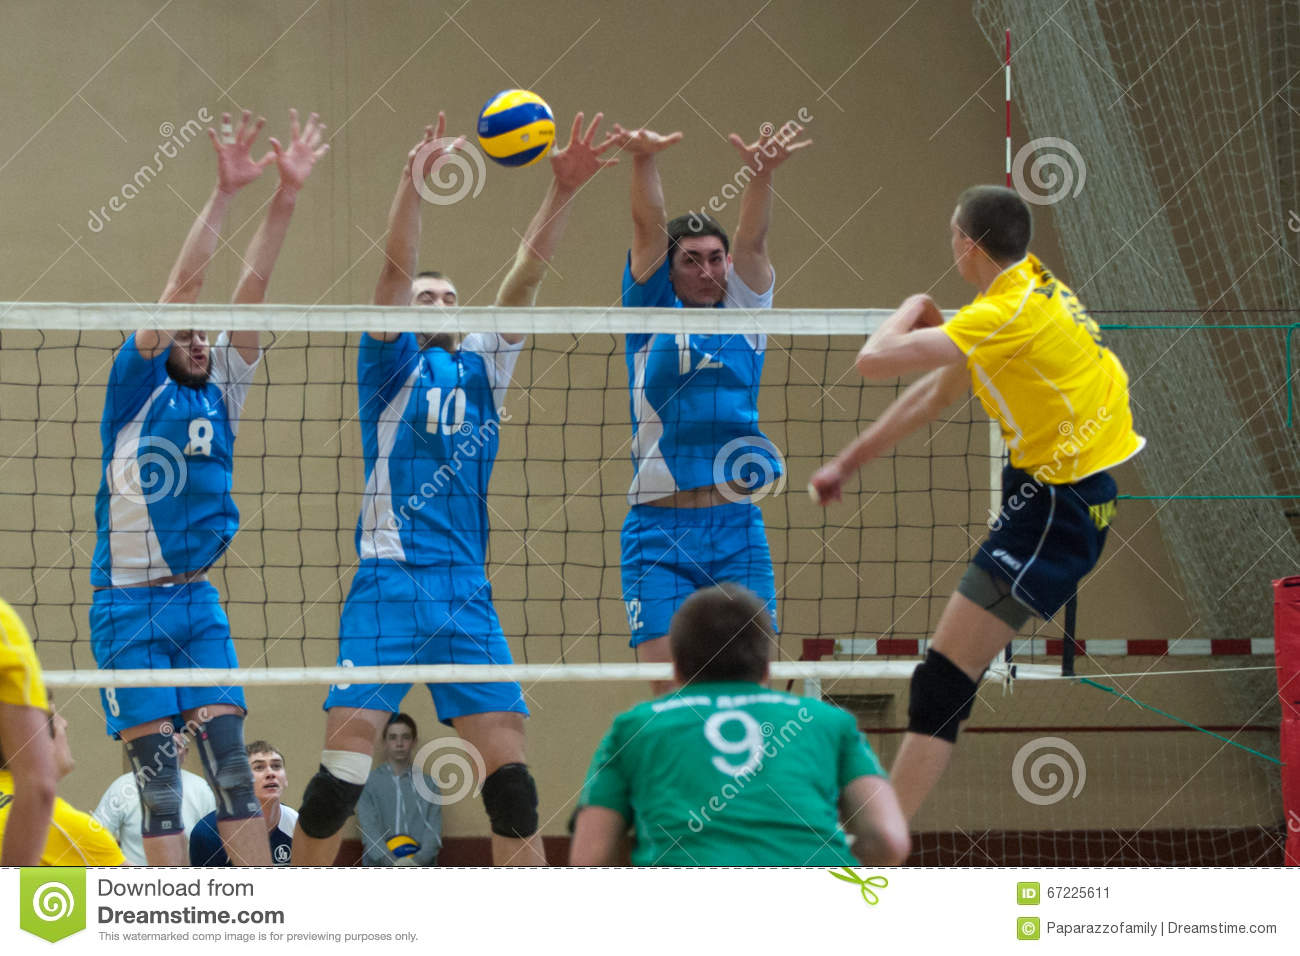 volleyball-match-ukrainian-super-league-men-matchday-teams-vc-dnipro-dnipropetrovsk-city-khimprom-sumy-city-67225611.jpg